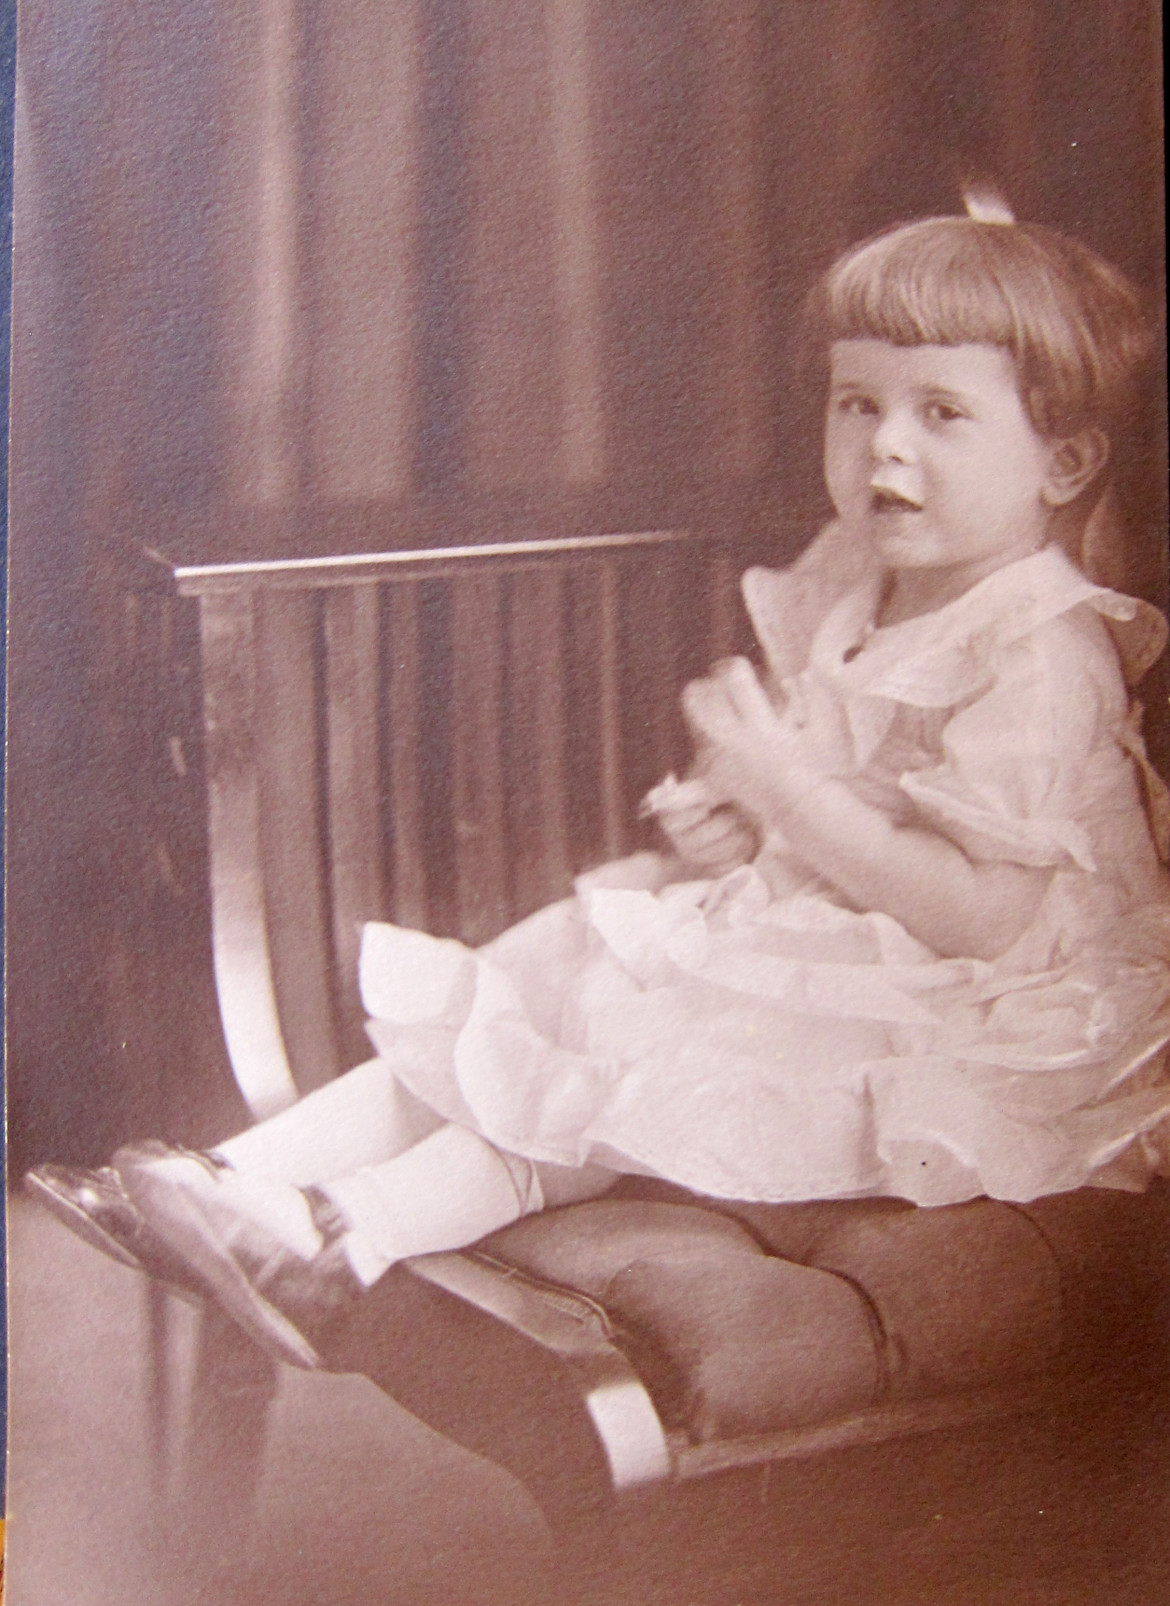 At some point, date unknown, they had a daughter, Marjorie.